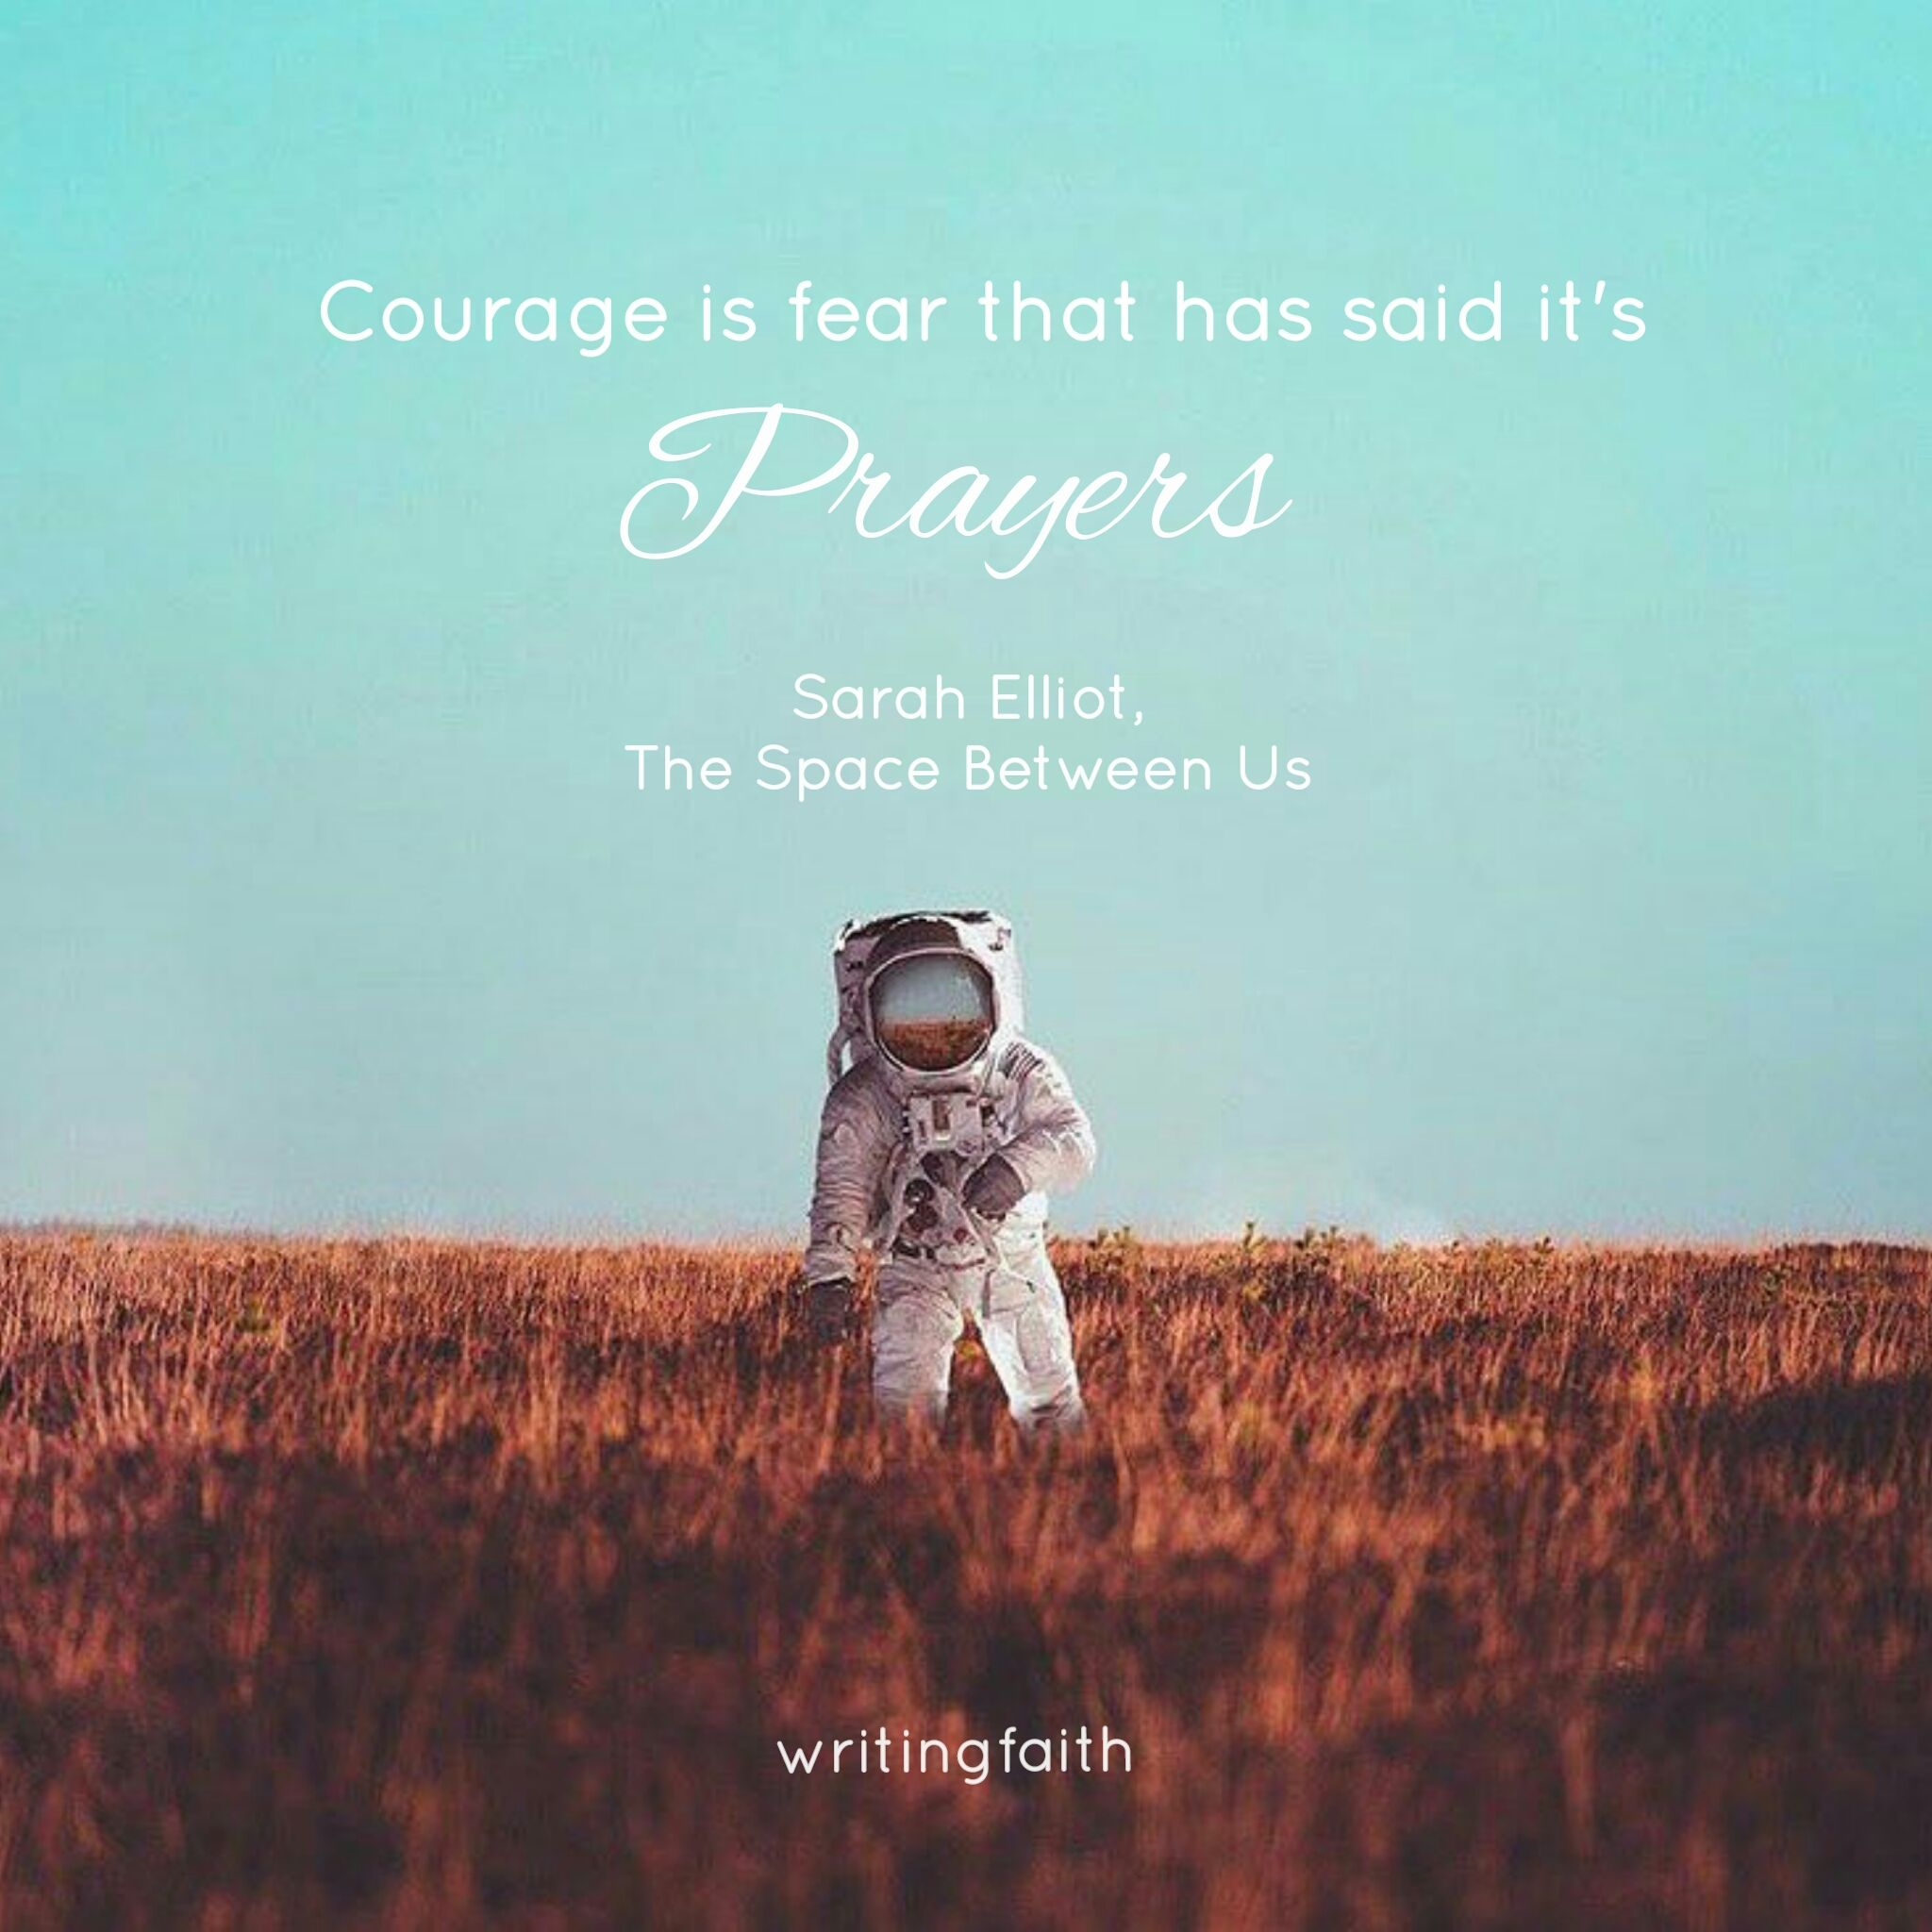 courage is fear that said its prayers